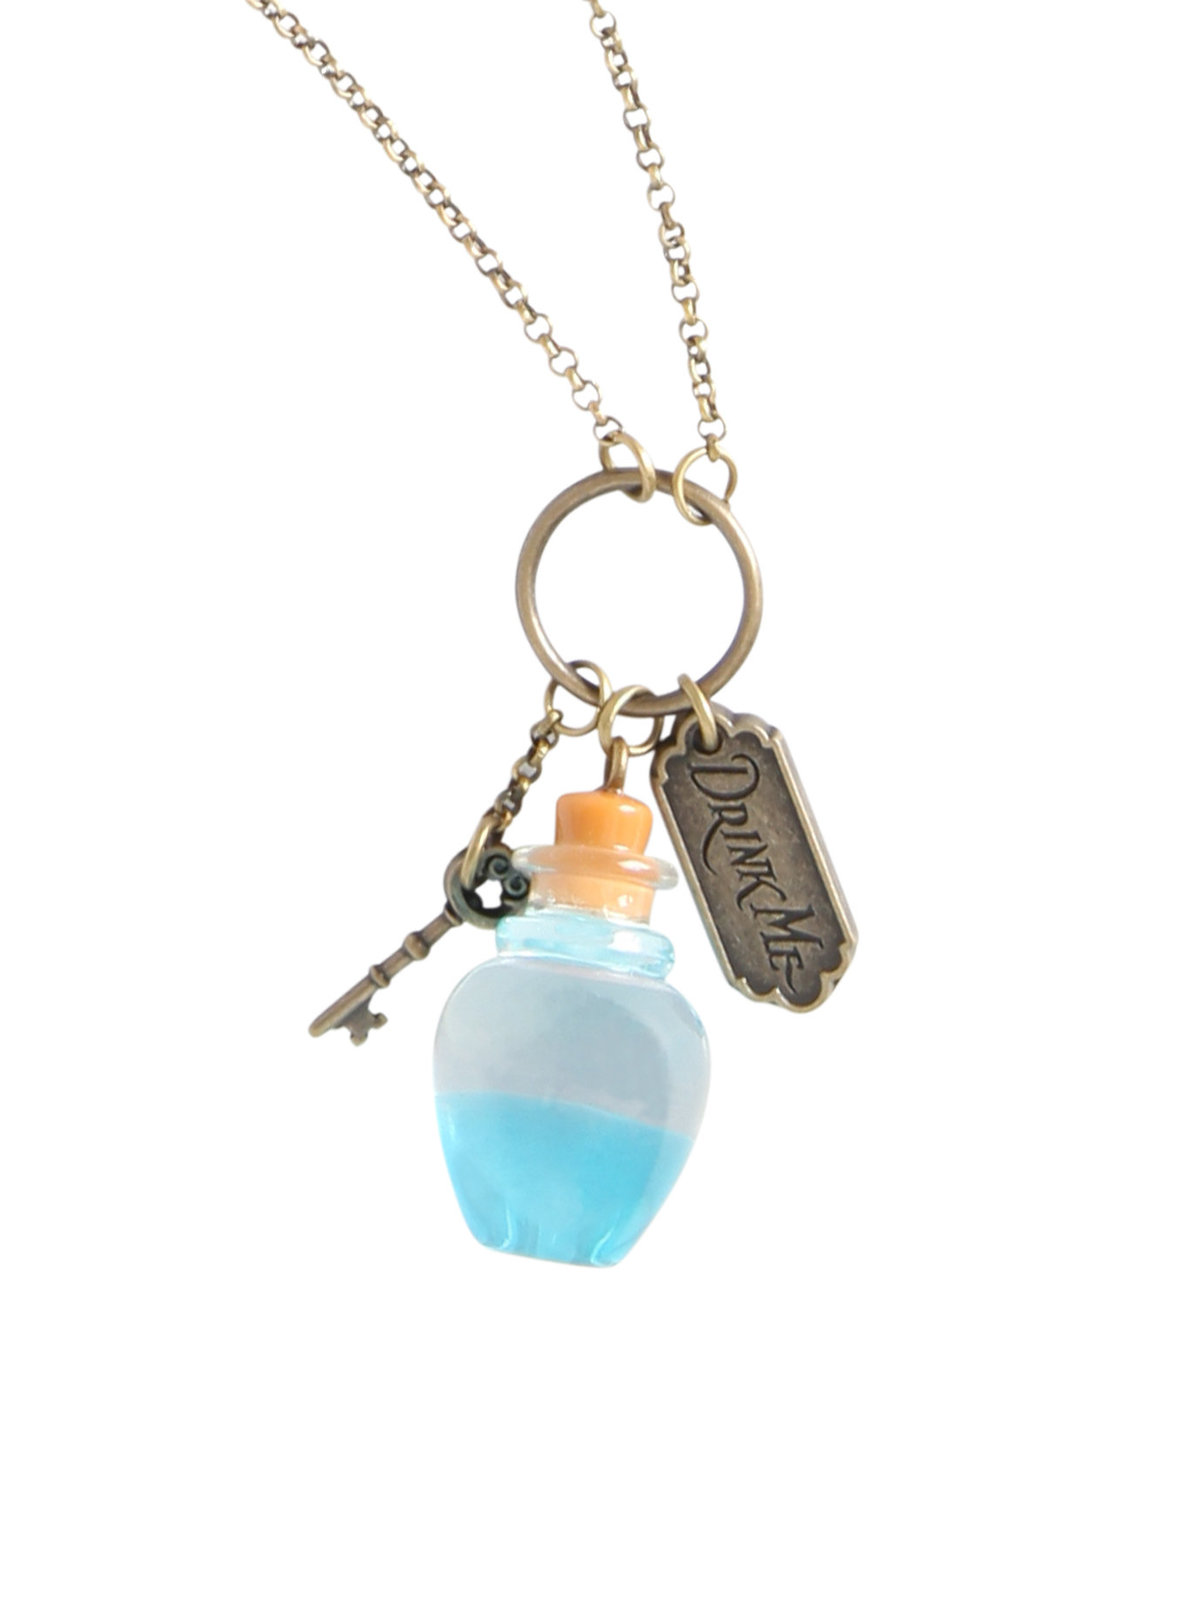 Neon Tuesday: Alice In Wonderland - Curiouser Bottle Necklace image